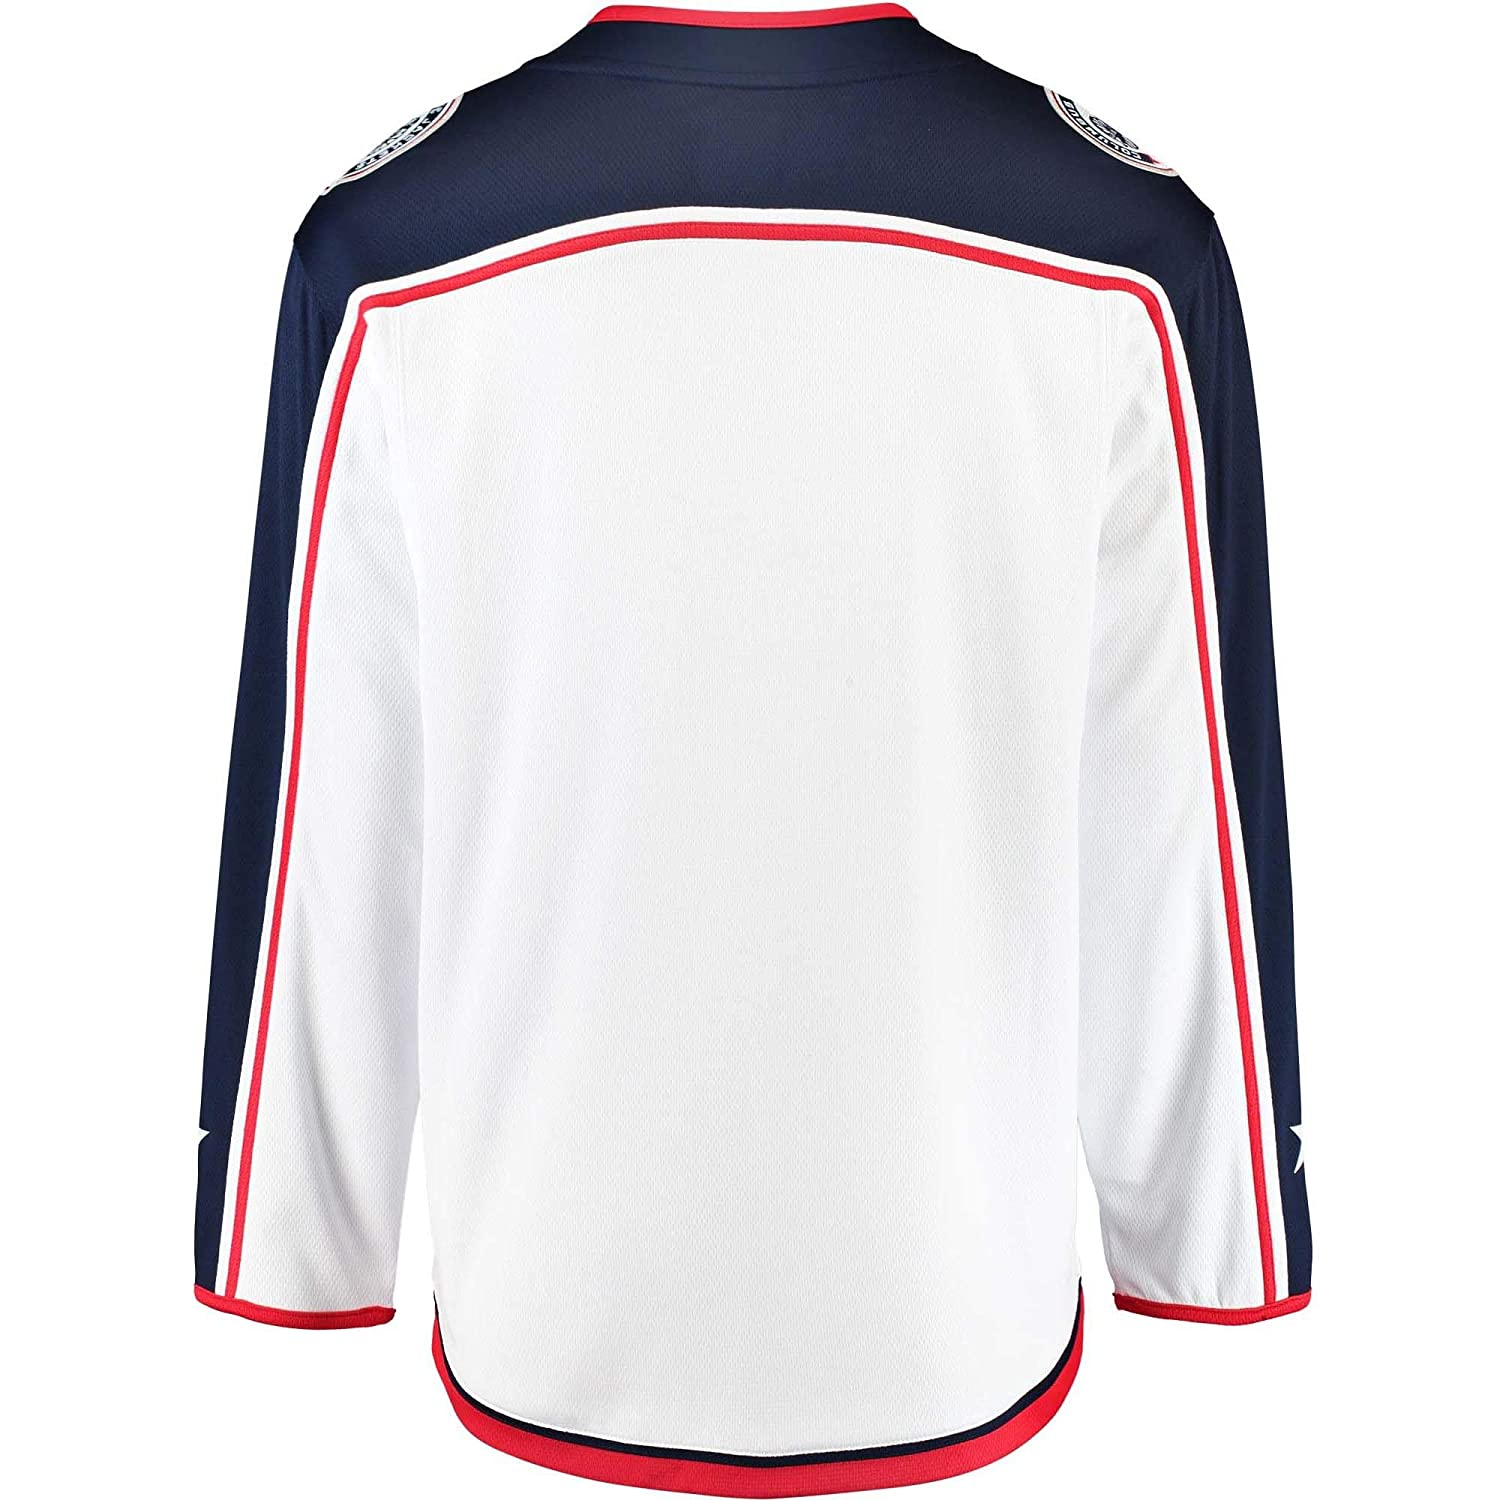 competitive price f6671 4ca02 Amazon.com  Outerstuff Columbus Blue Jackets Blank White Youth Away Premier  Team Jersey (Small Medium 8-12)  Clothing